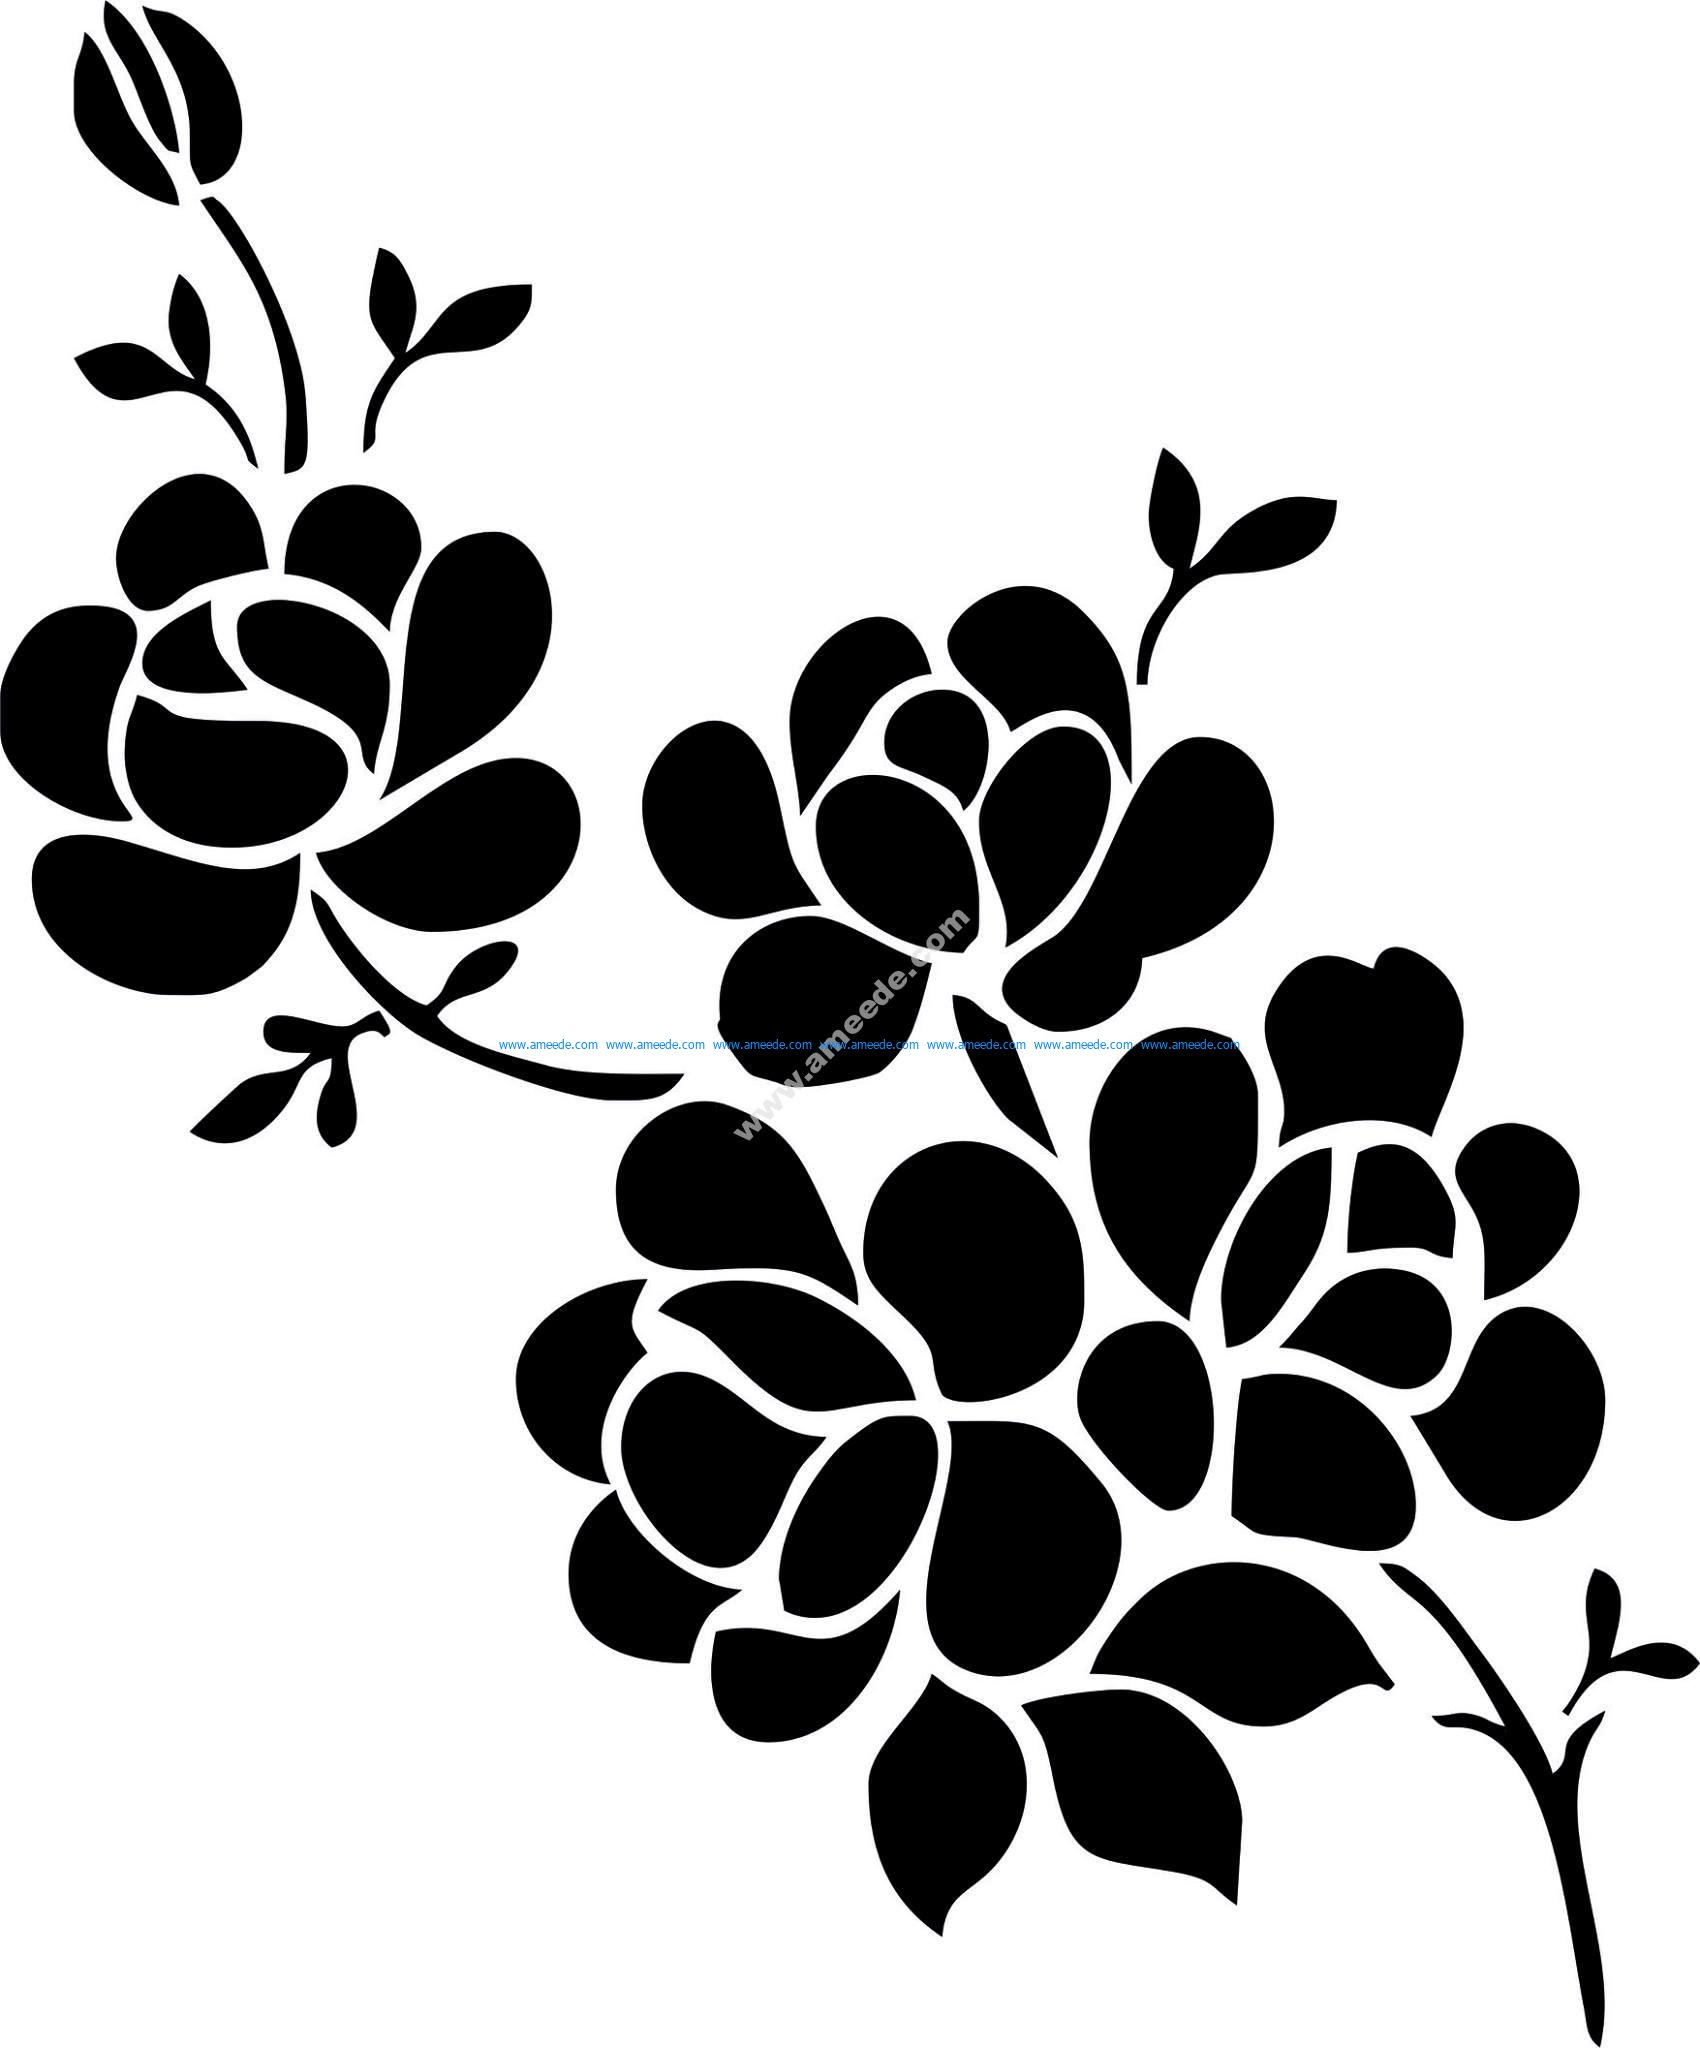 Elegant Black And White Flower Vector Art jpg